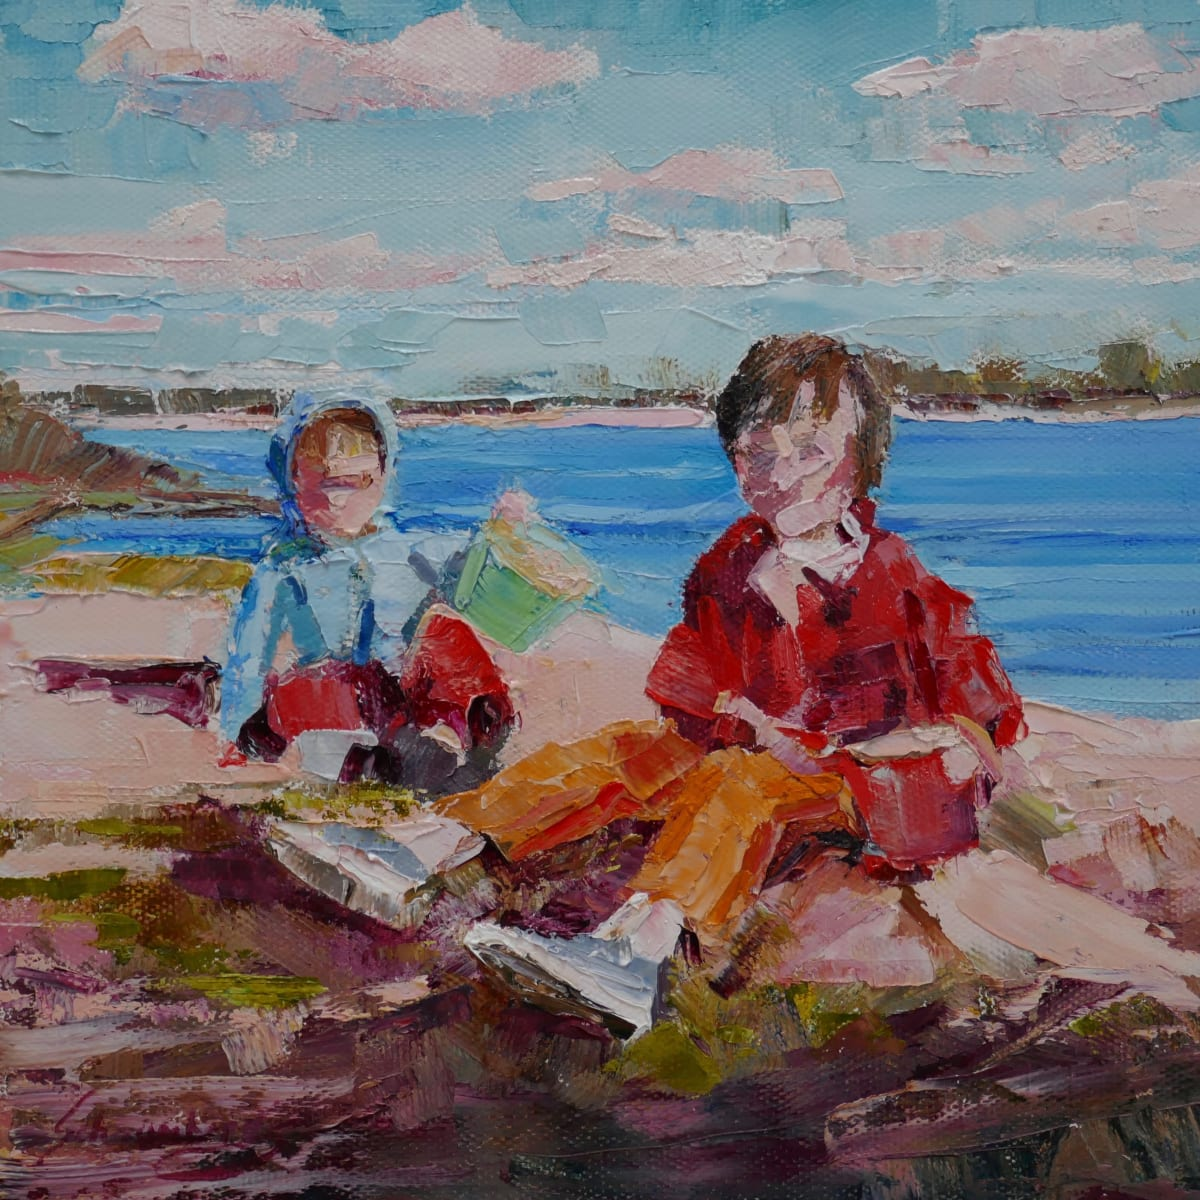 By the Bay by Debra Schaumberg